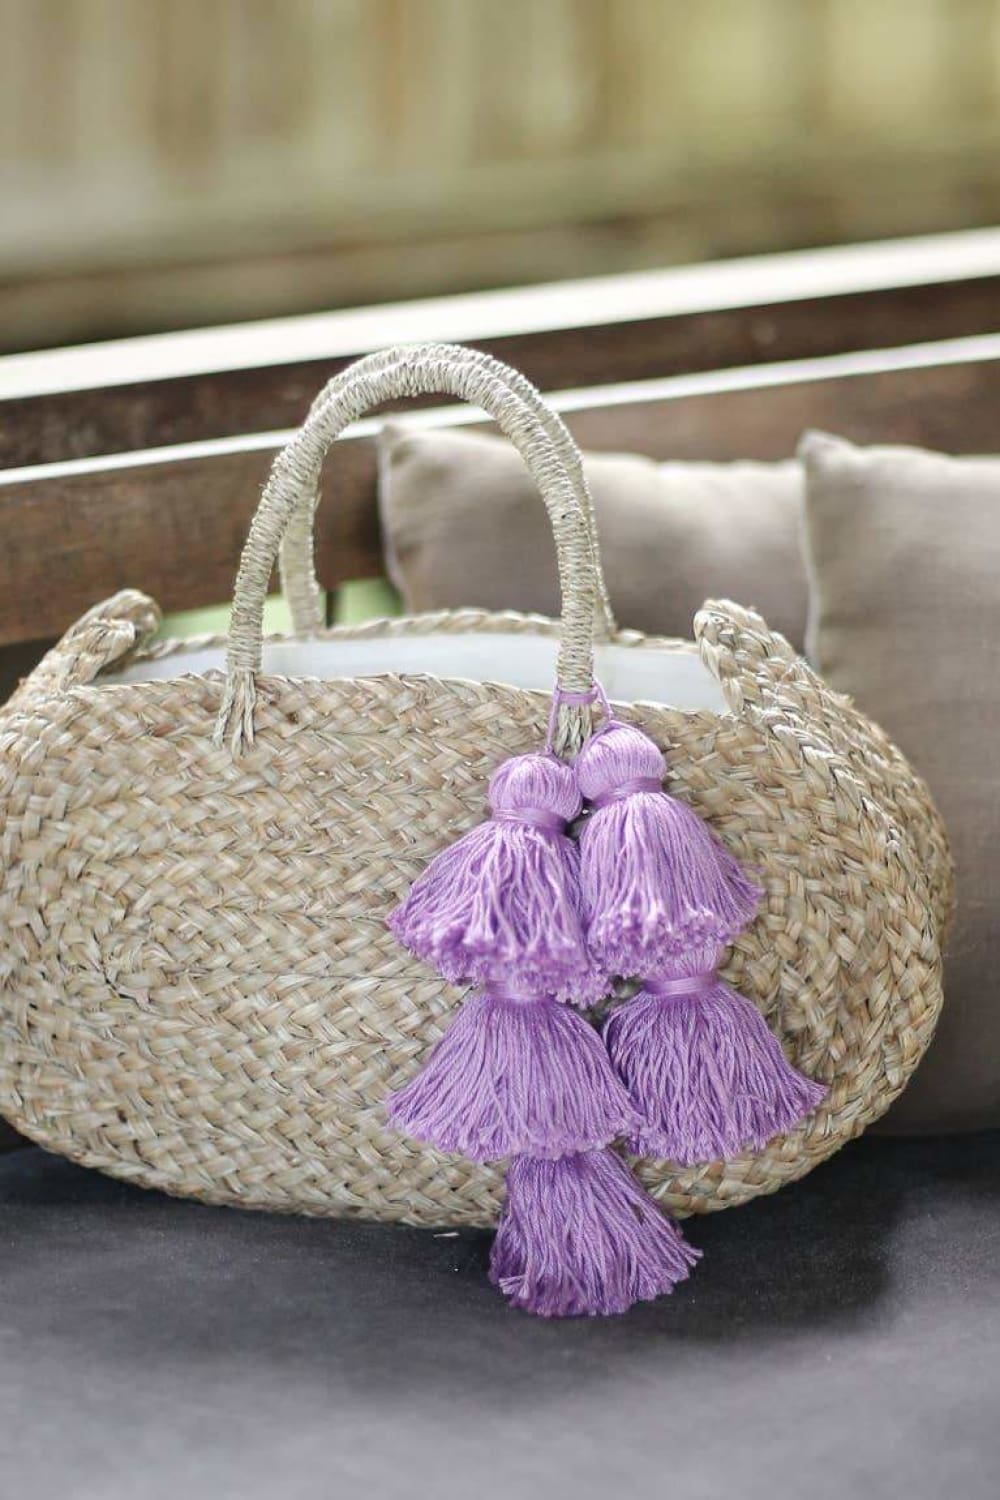 Oval Luna Straw Tote Bag - Bags - Brunna Co